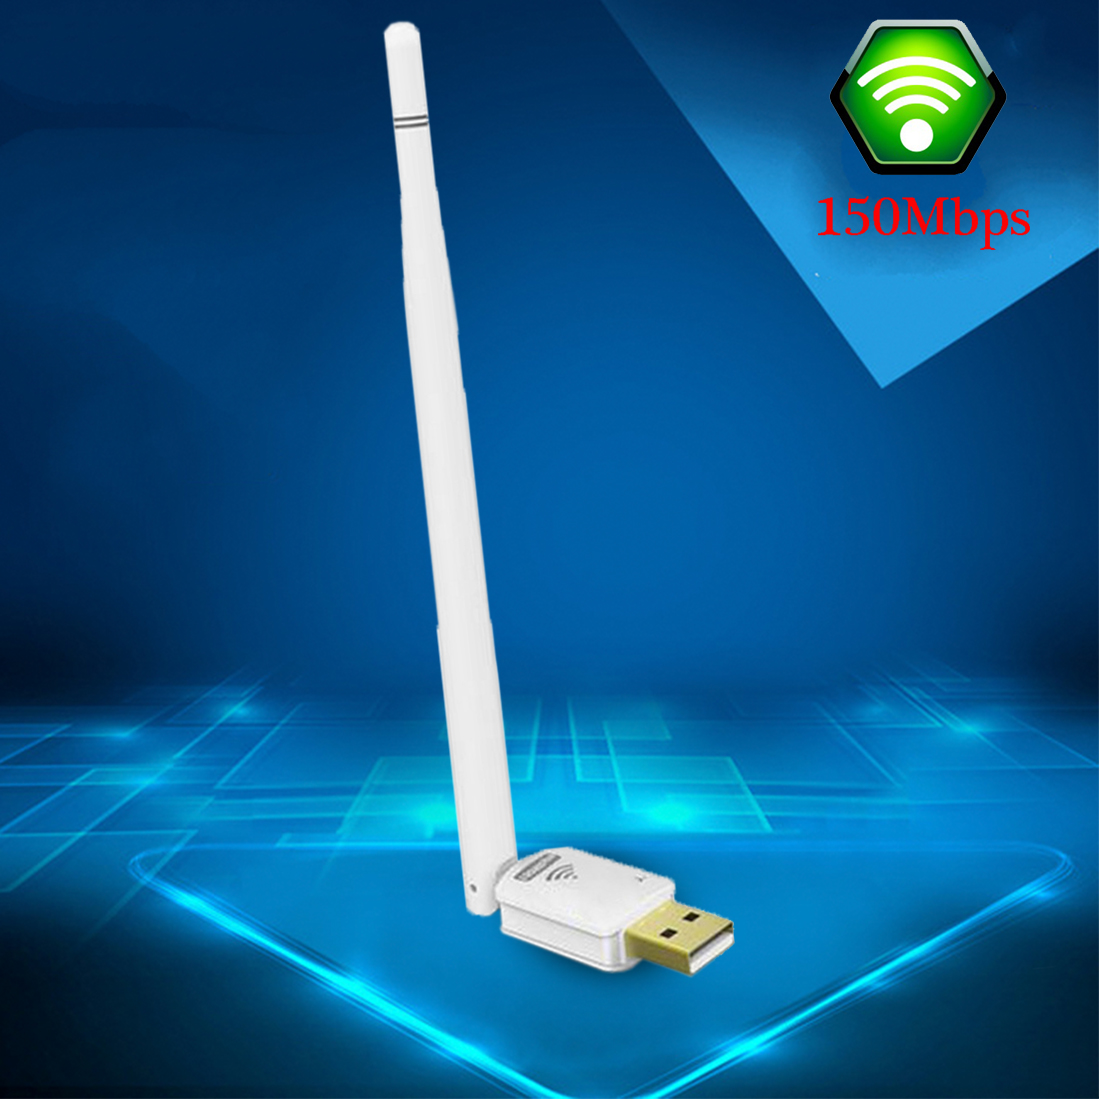 2wire 802.11g Wireless USB adapter Driver Not Working